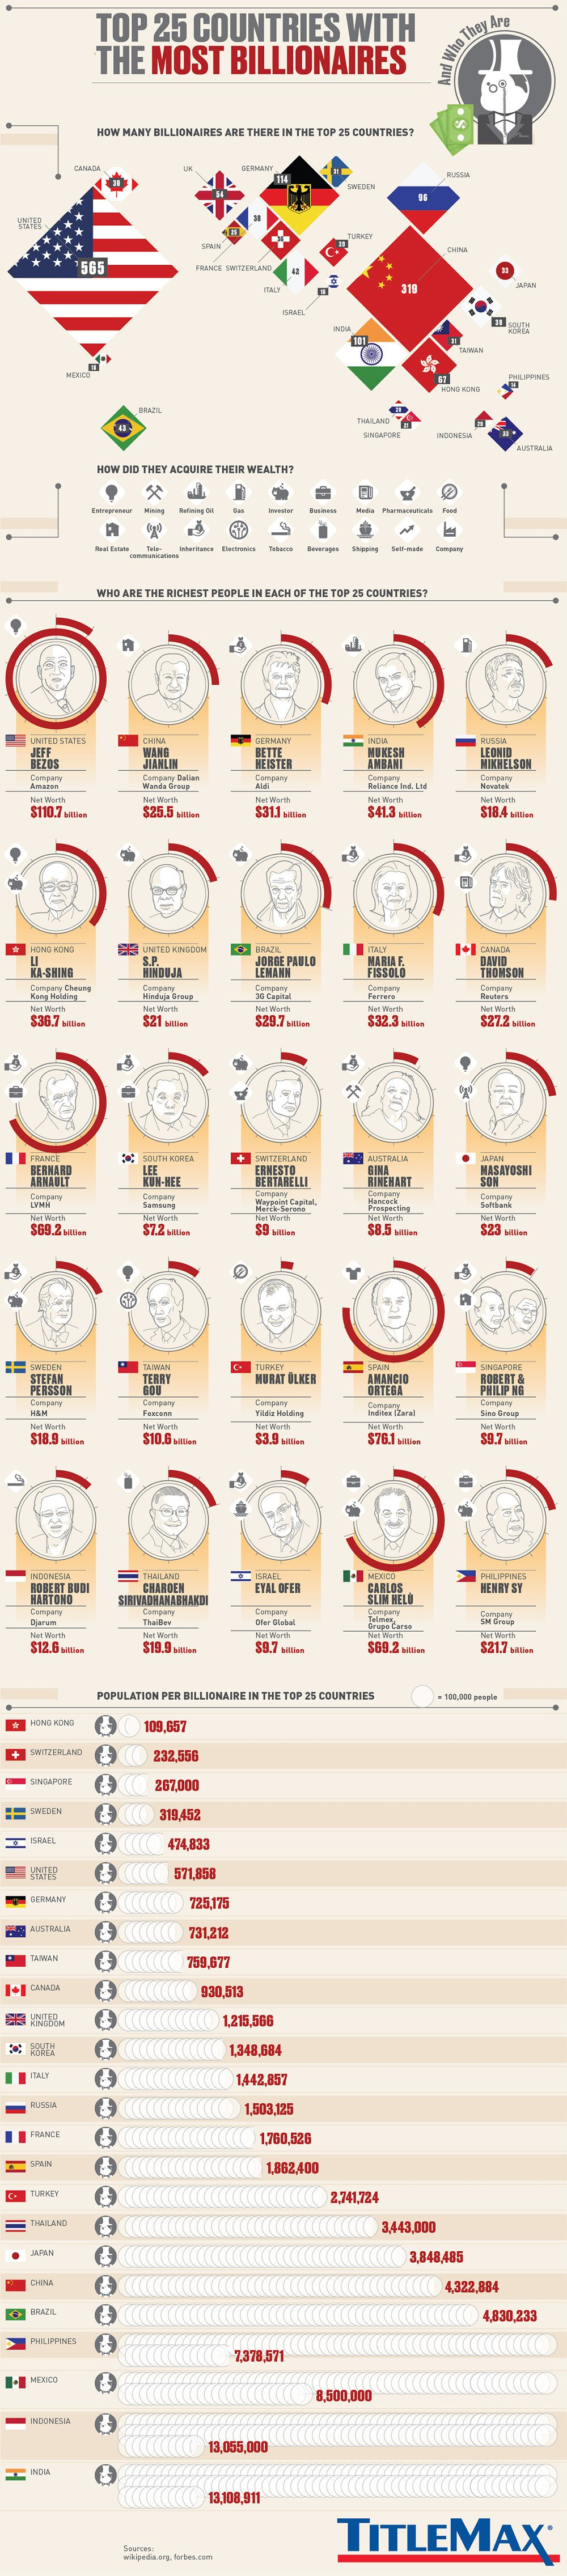 The Billionaire World Map: Top 25 Countries - Infographic